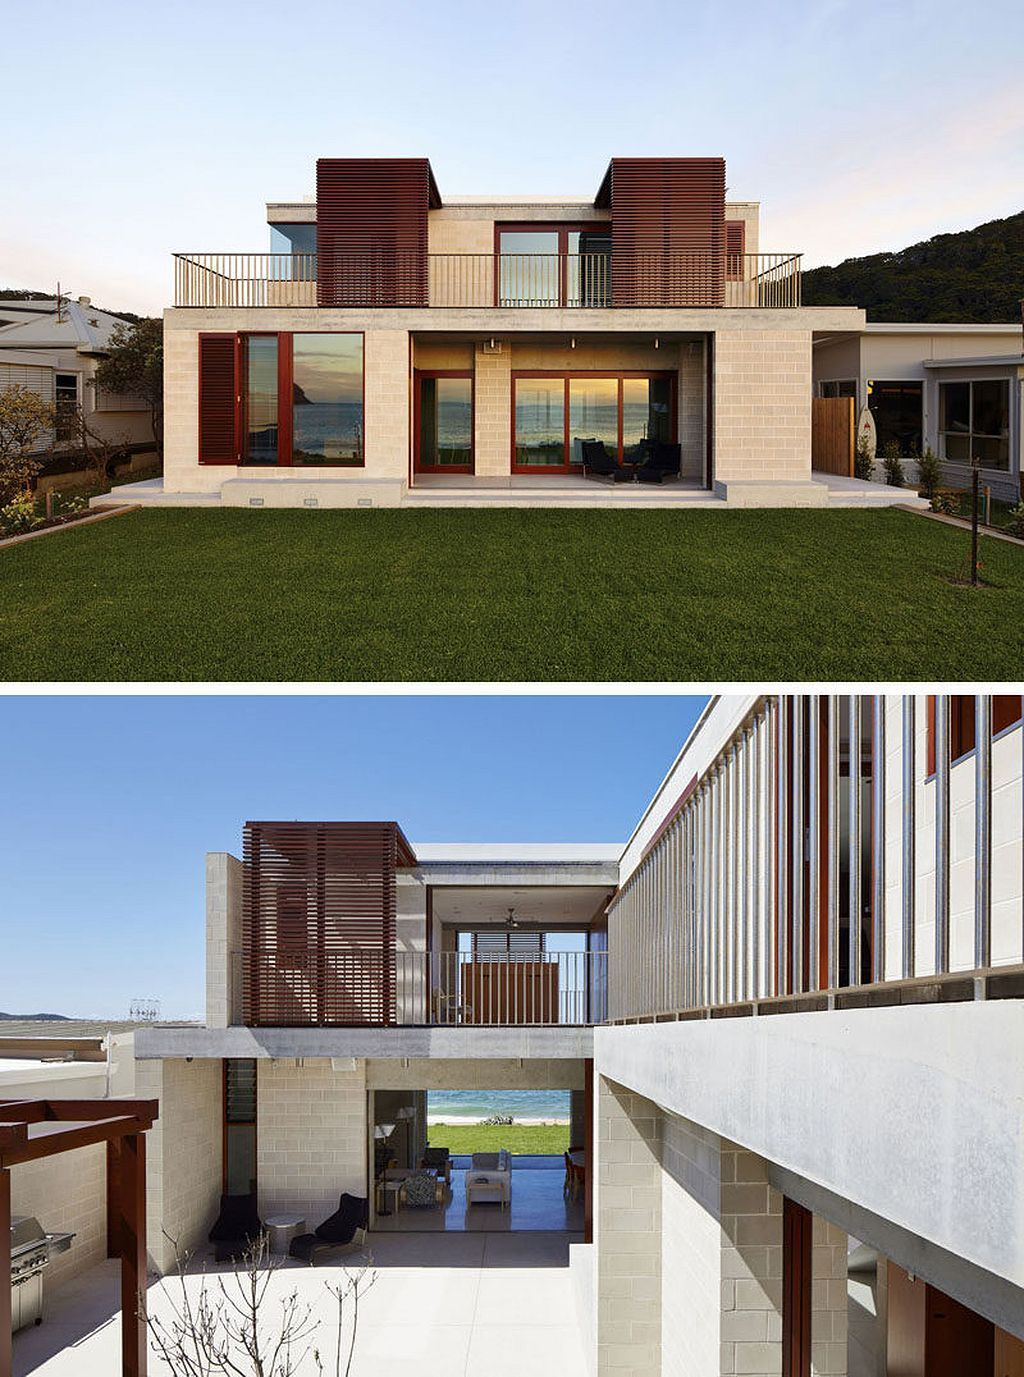 50 Amazing Modern Beach House You Want To Live In Modern Beach House Contemporary Beach House Small Beach Houses